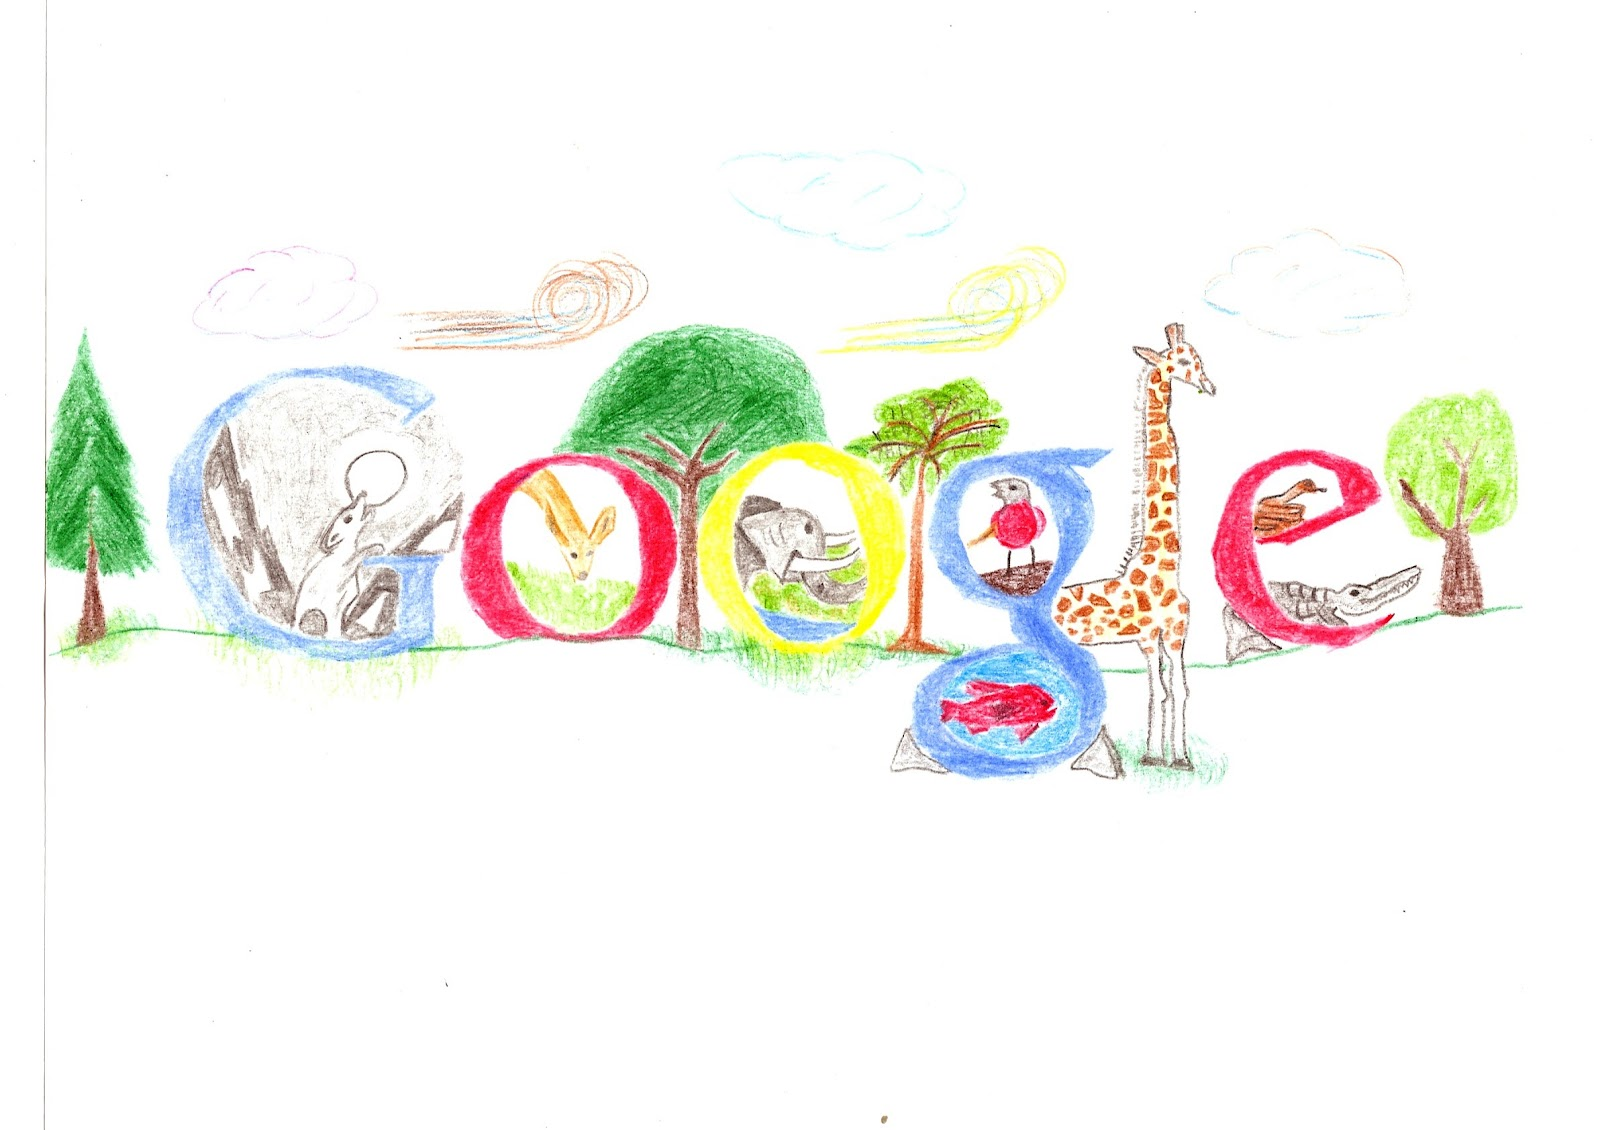 The Evolving Classroom: Doodle for Google Contest is now open for 2012